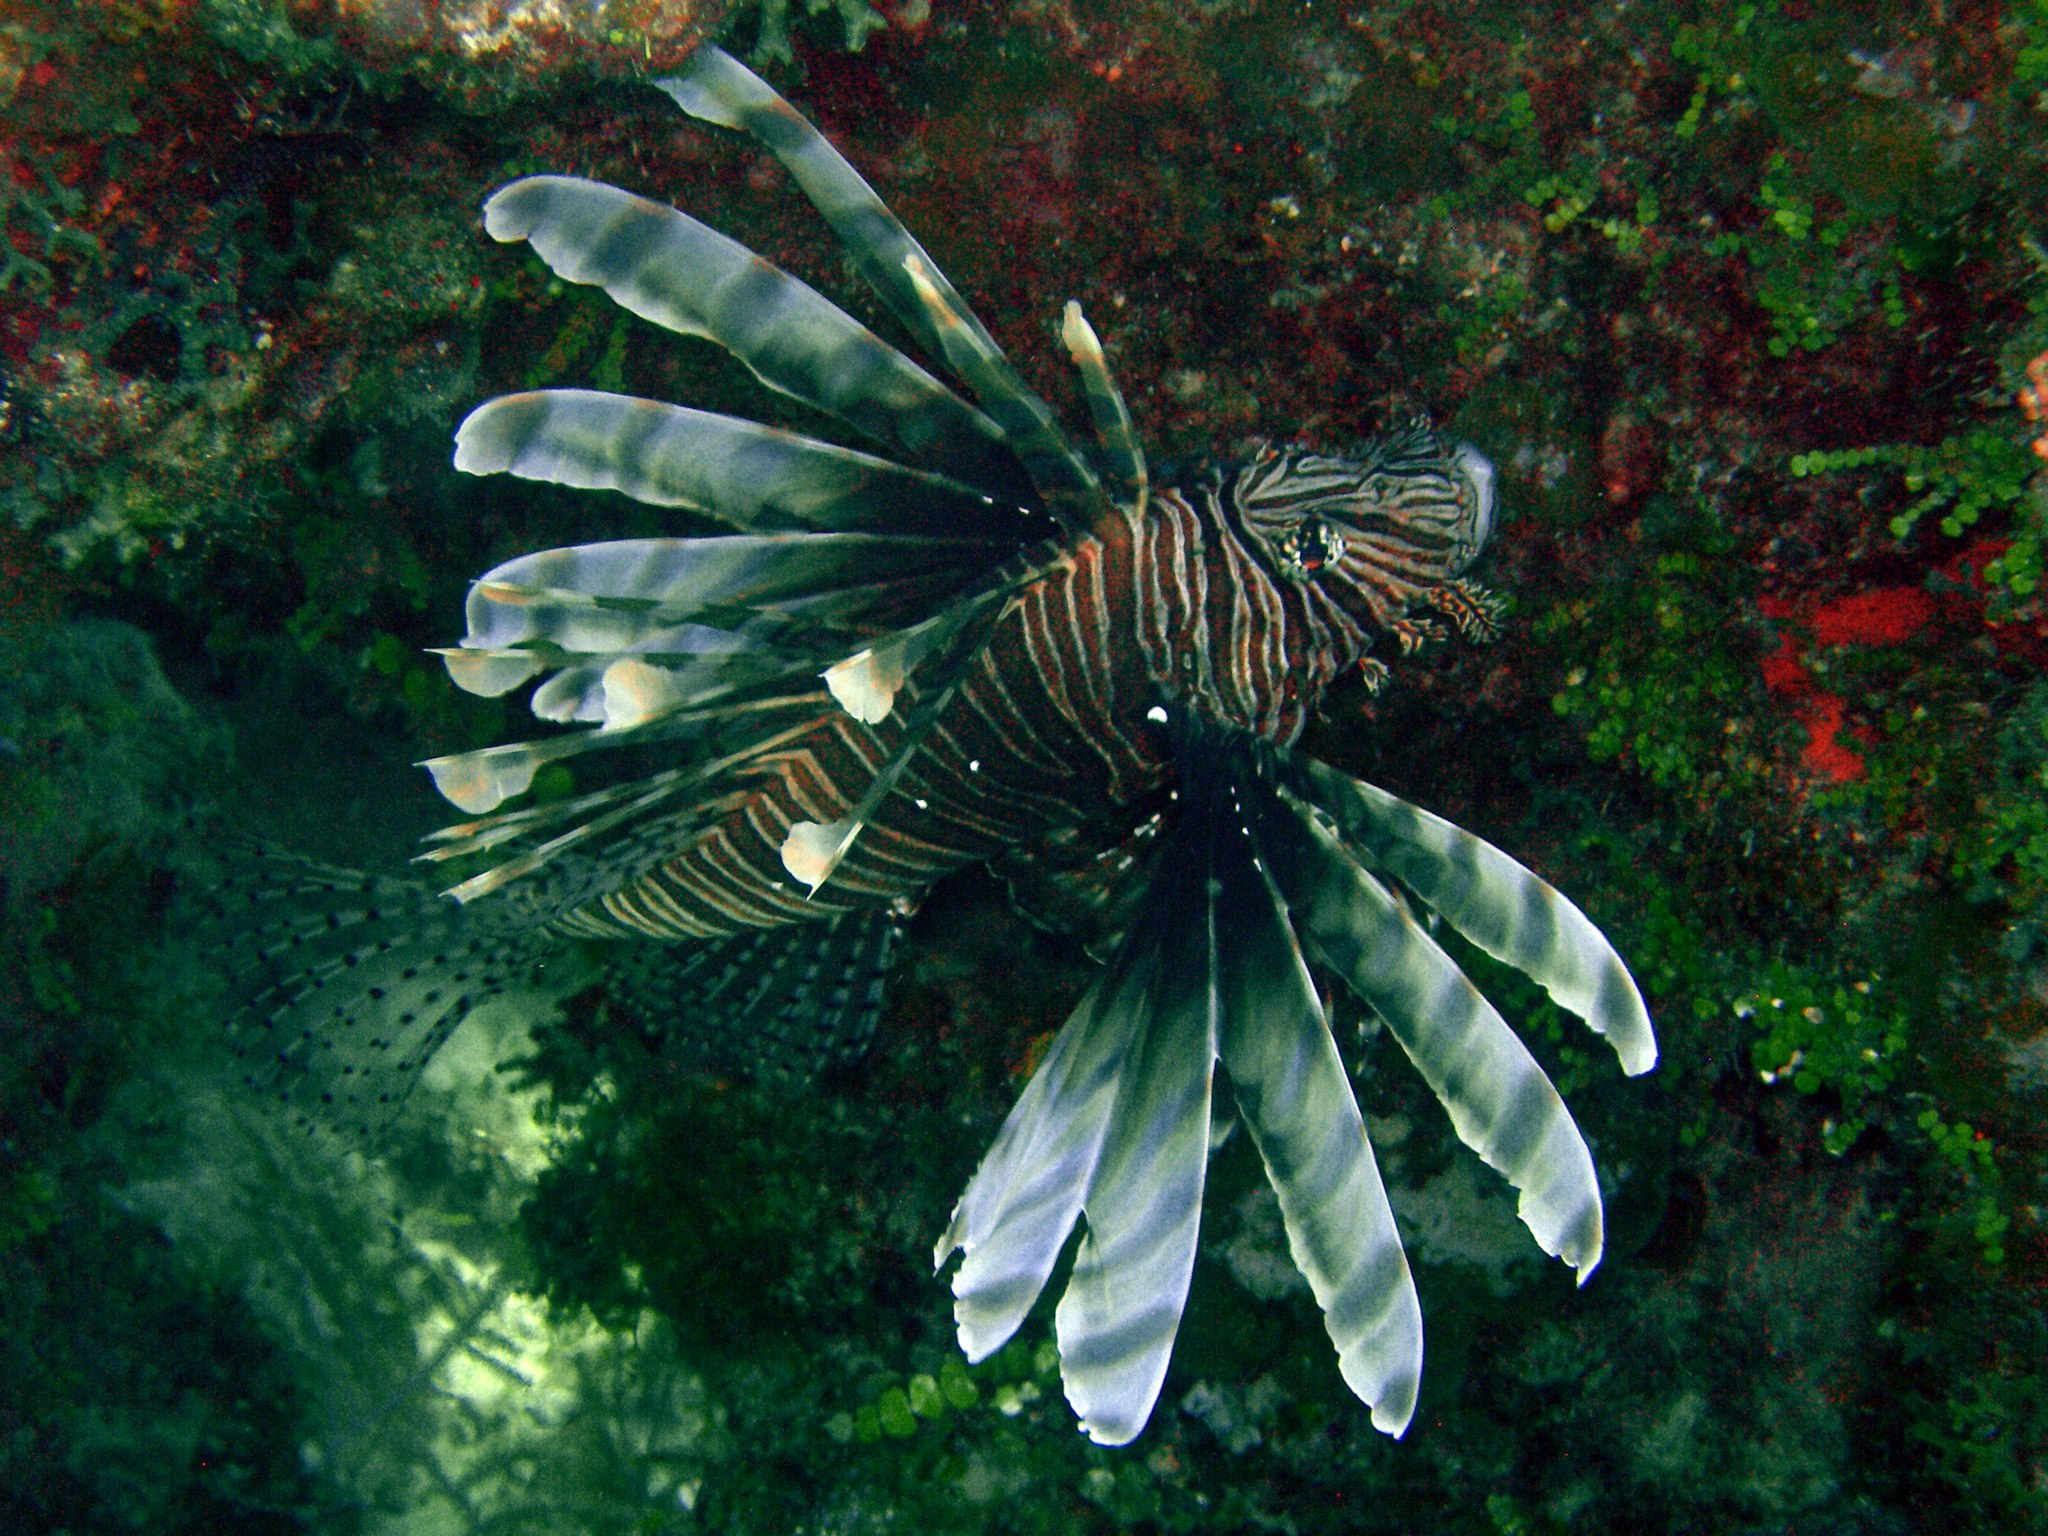 Red Lionfish (Pterois volitans) | Better Know a Fish!